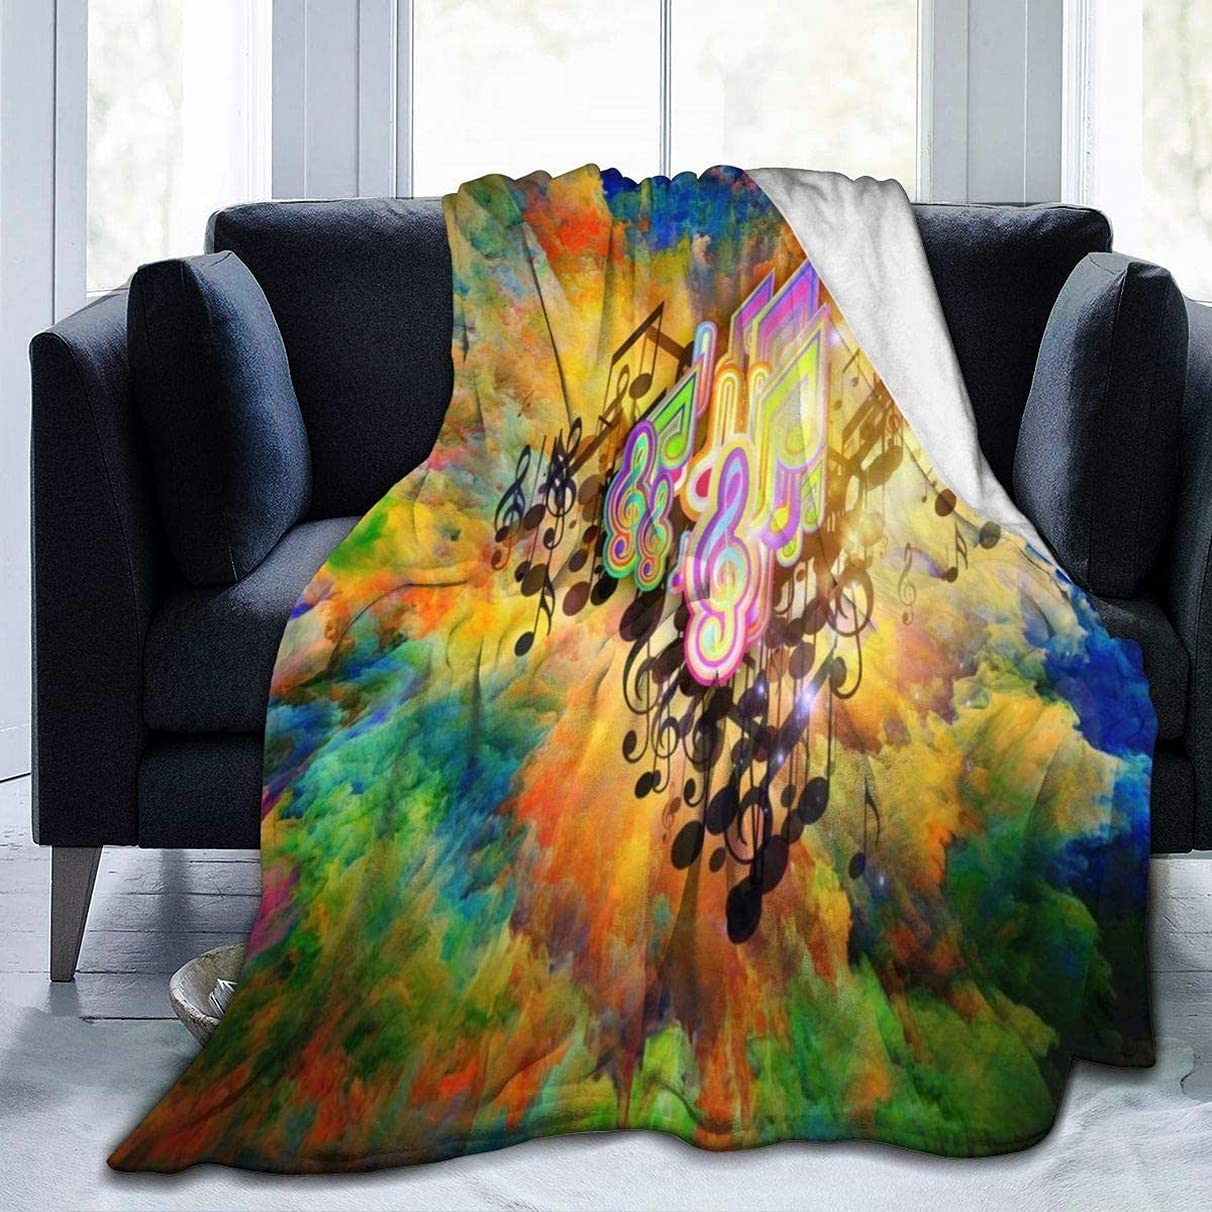 Fleece Blanket Throw Oklahoma City Mall and Throws Clouds Colorful Music Outstanding Note Lig